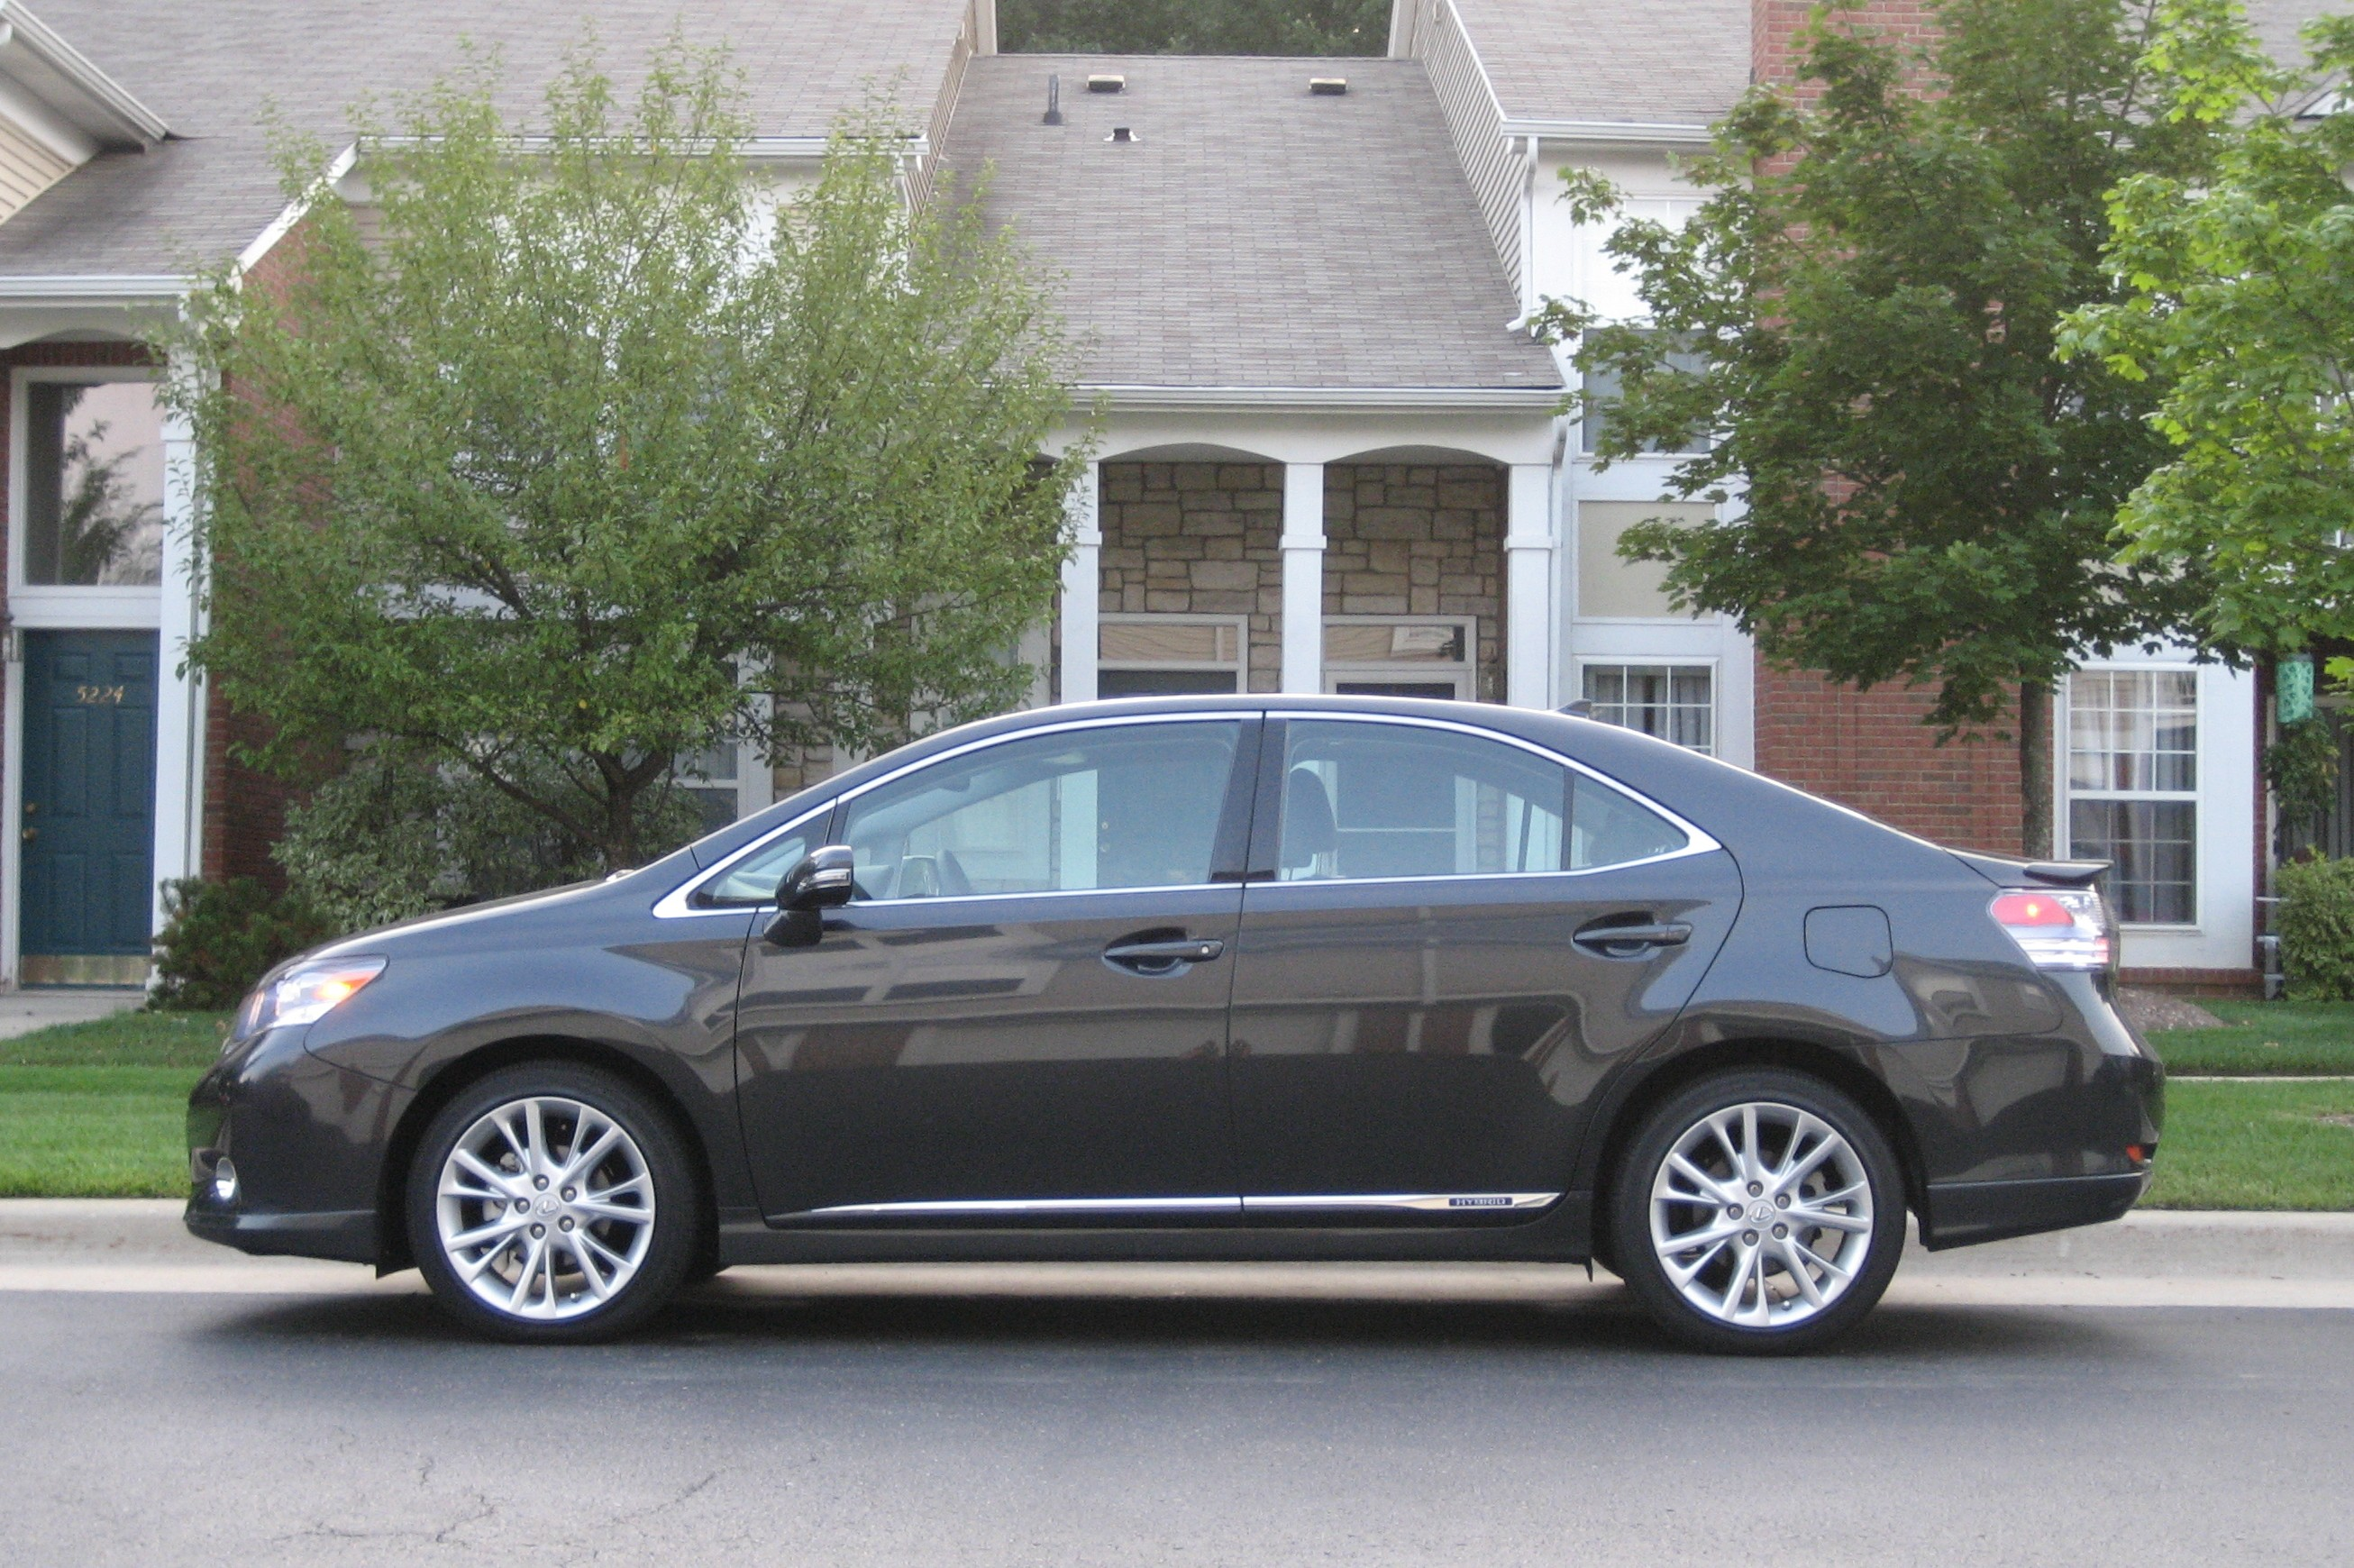 Miami Used Chevrolet >> 2010 Lexus HS 250h Review, Ratings, Specs, Prices, and ...